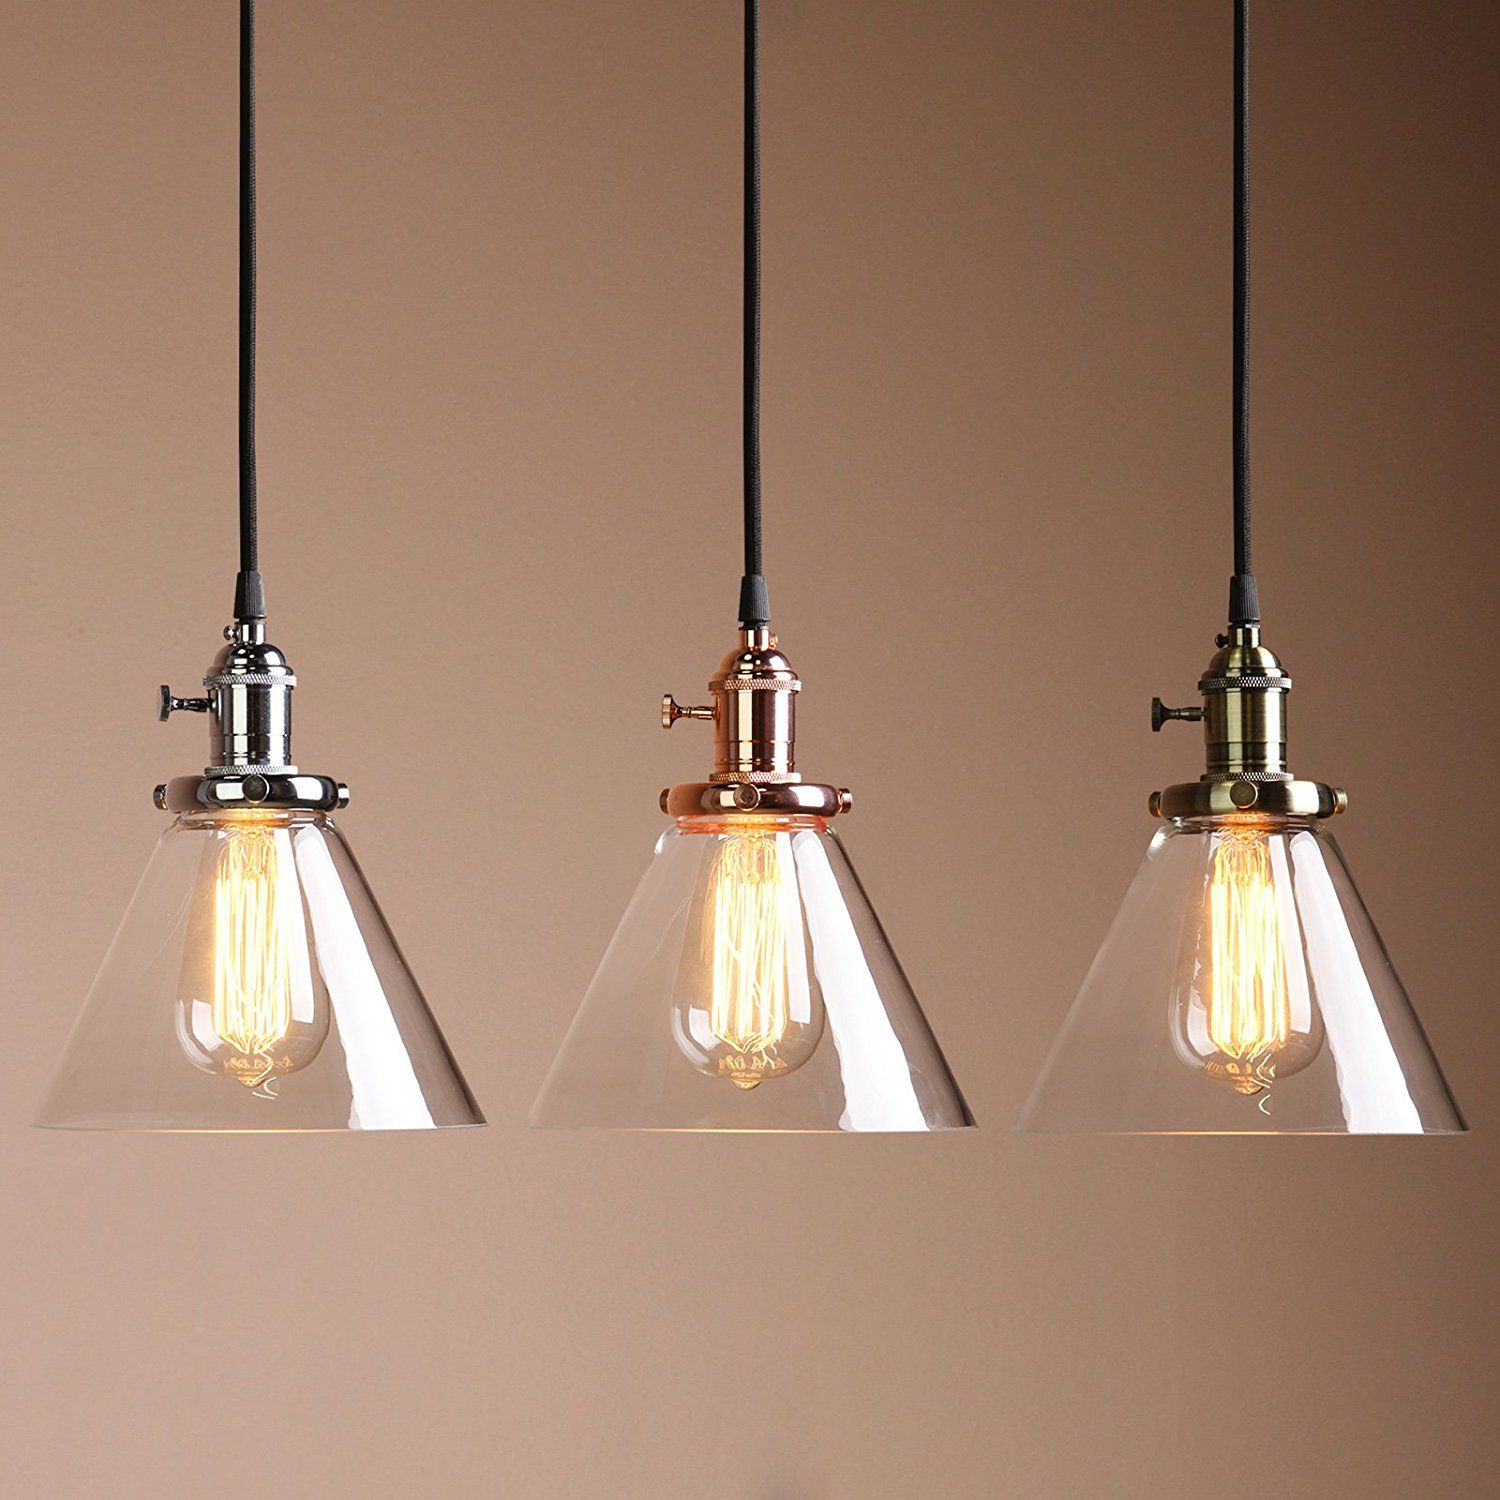 CEILING LAMP VINTAGE INDUSTRIAL CLEAR GLASS PENDANT LIGHT SHADE LIGHTING FIXTURE